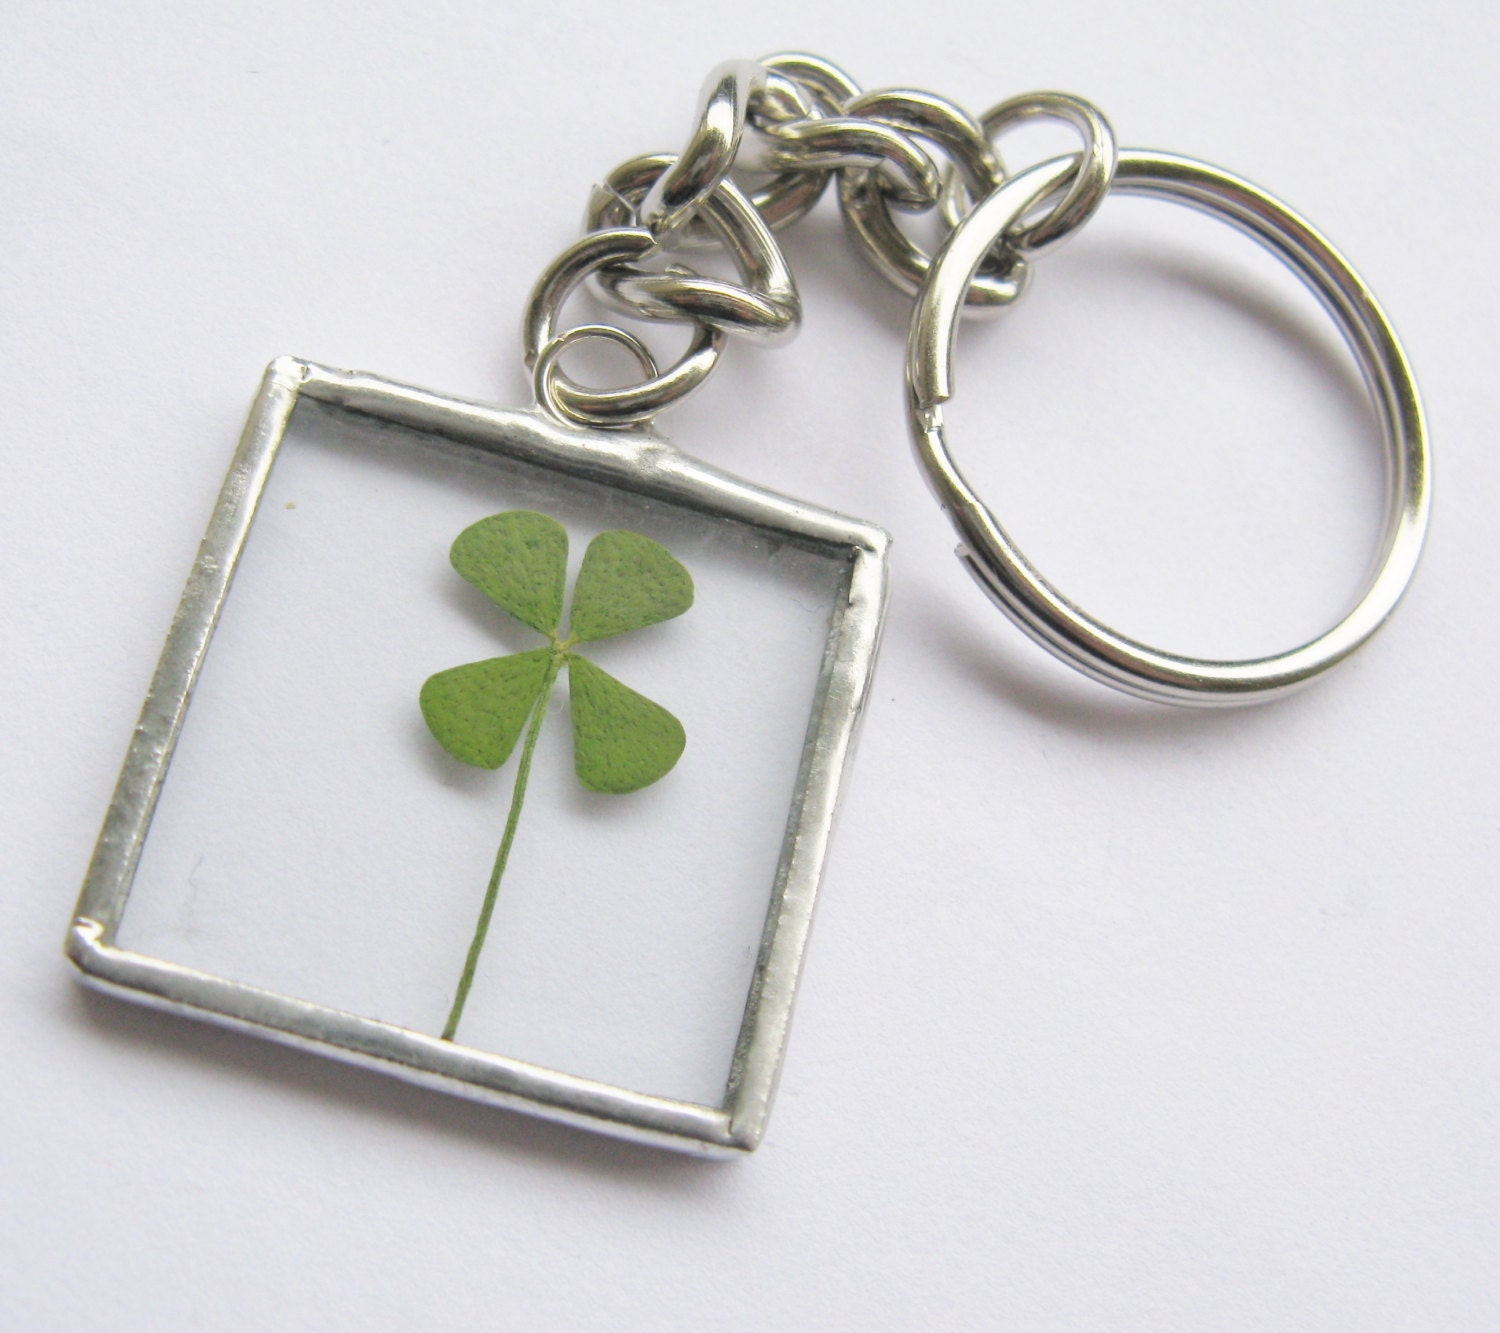 four leaf clover keychain keychain stocking stuffers